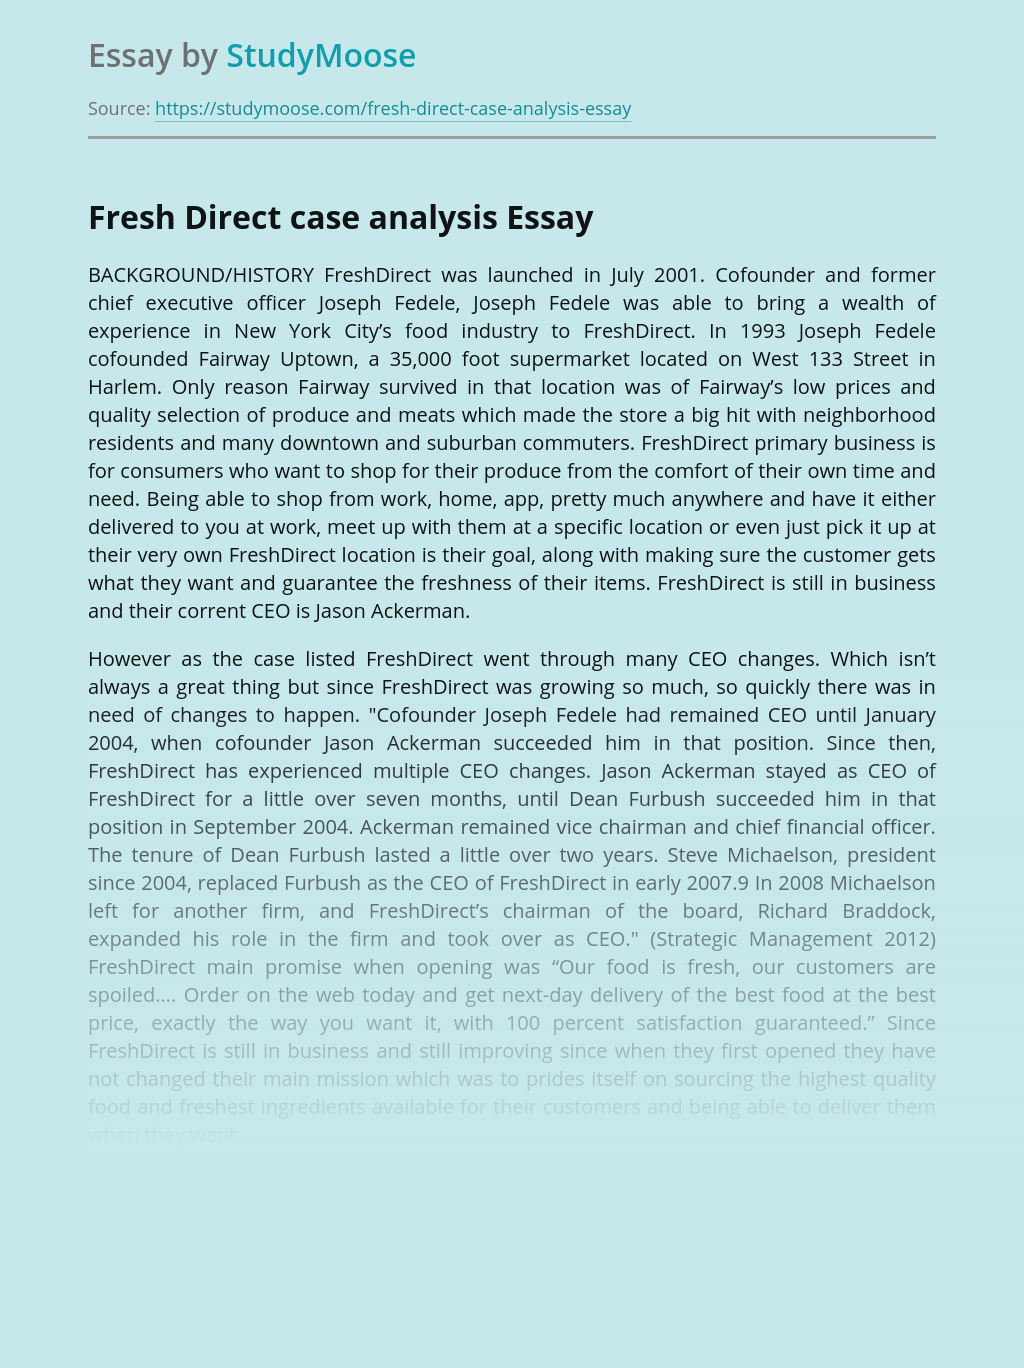 Business Success of FreshDirect Company